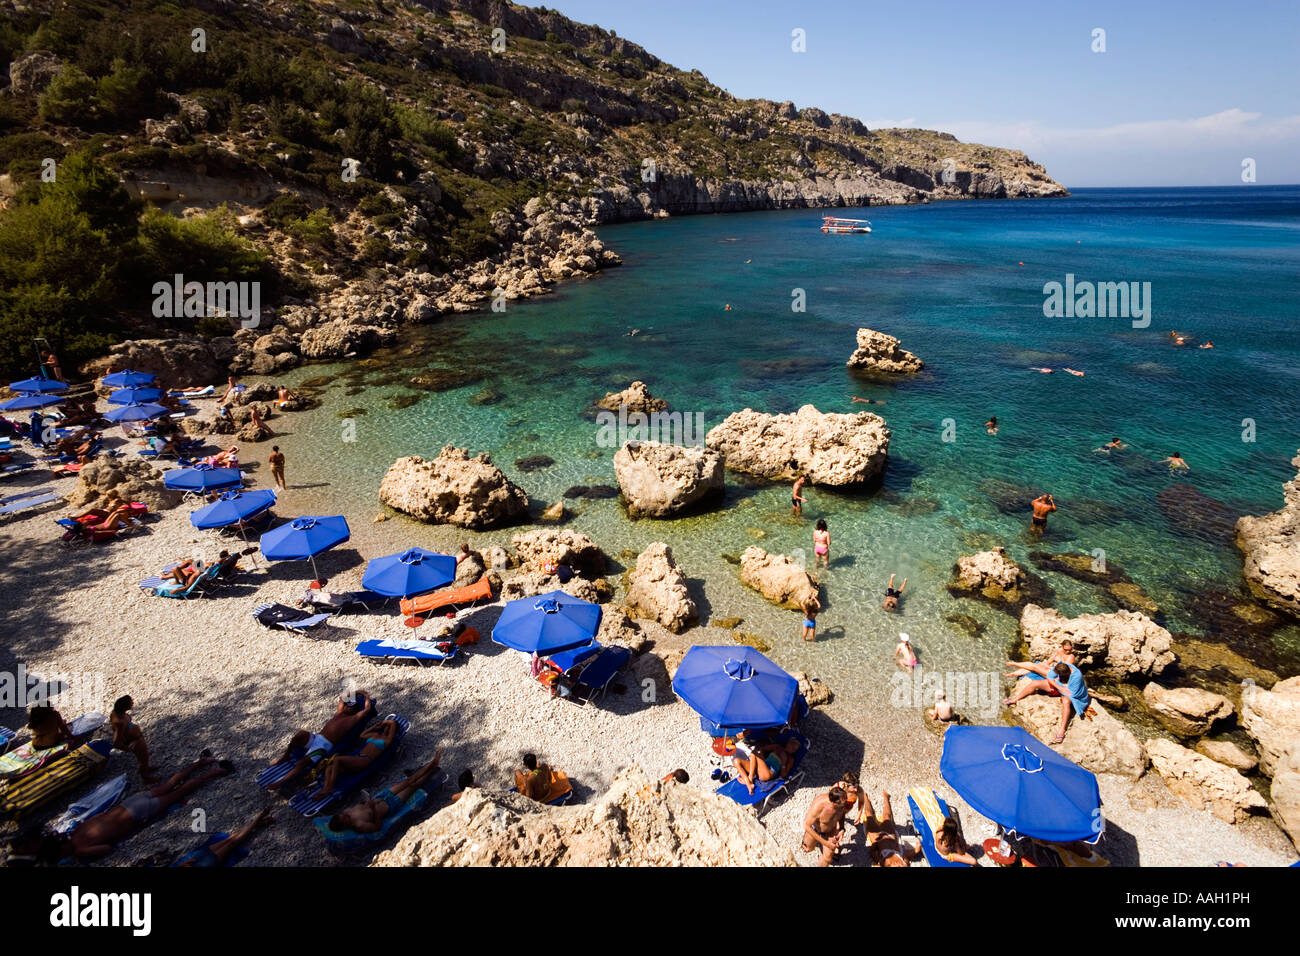 view over beach at anthony quinn bay film location of the film the stock photo royalty free. Black Bedroom Furniture Sets. Home Design Ideas